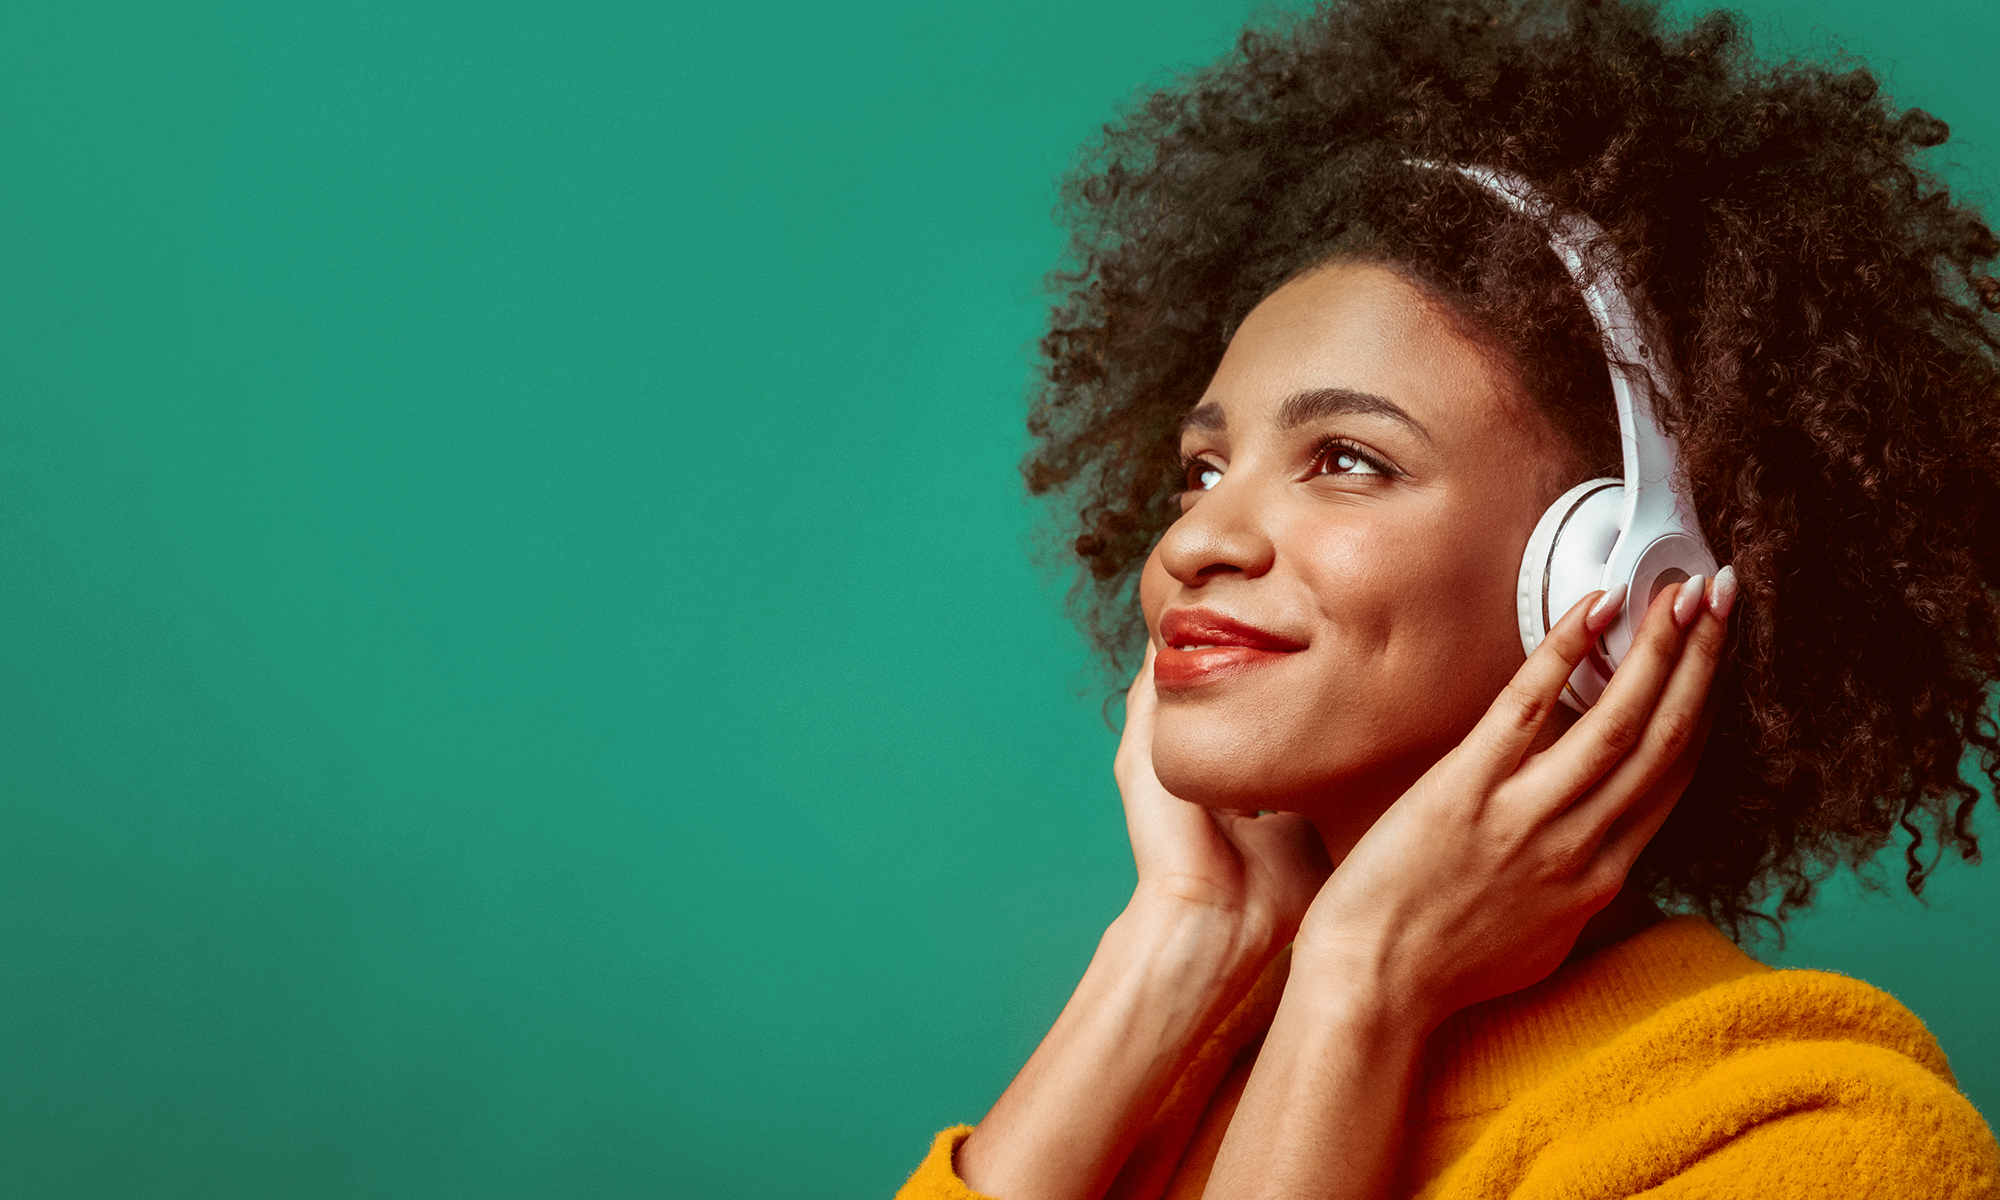 Smiling girl with headphones listening to podcasts